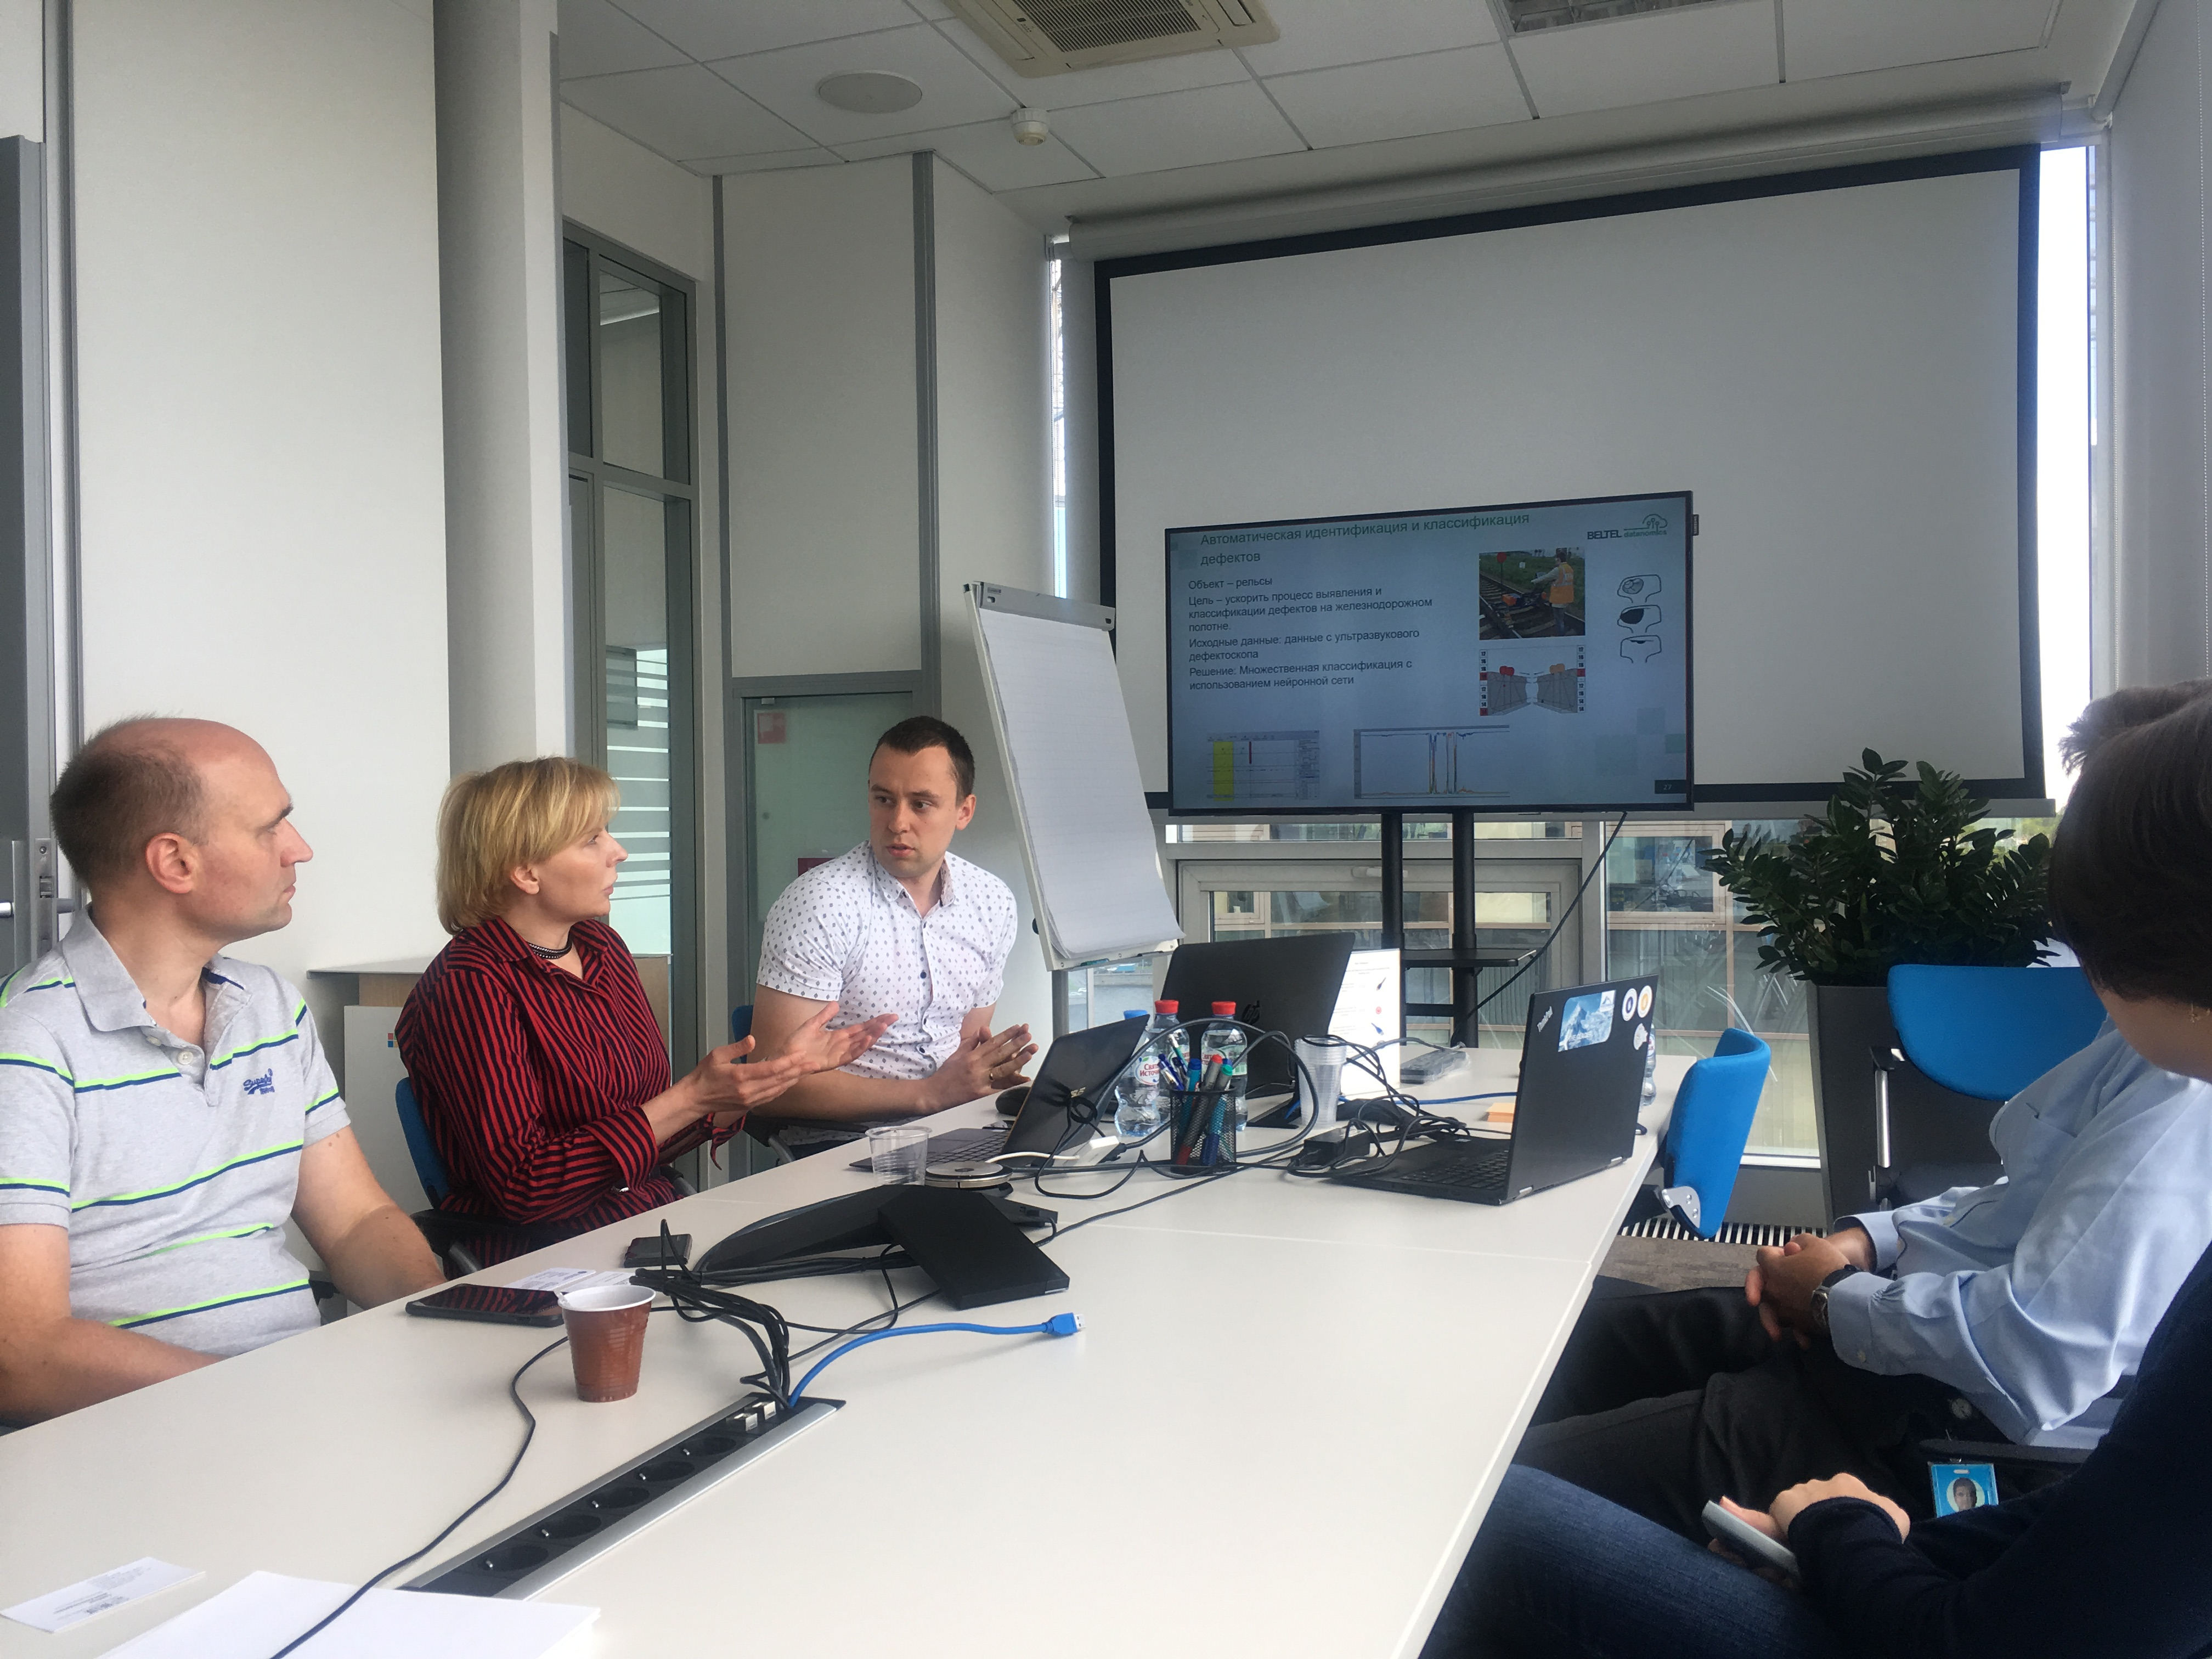 Datanomics and Microsoft held a roundtable in St. Petersburg